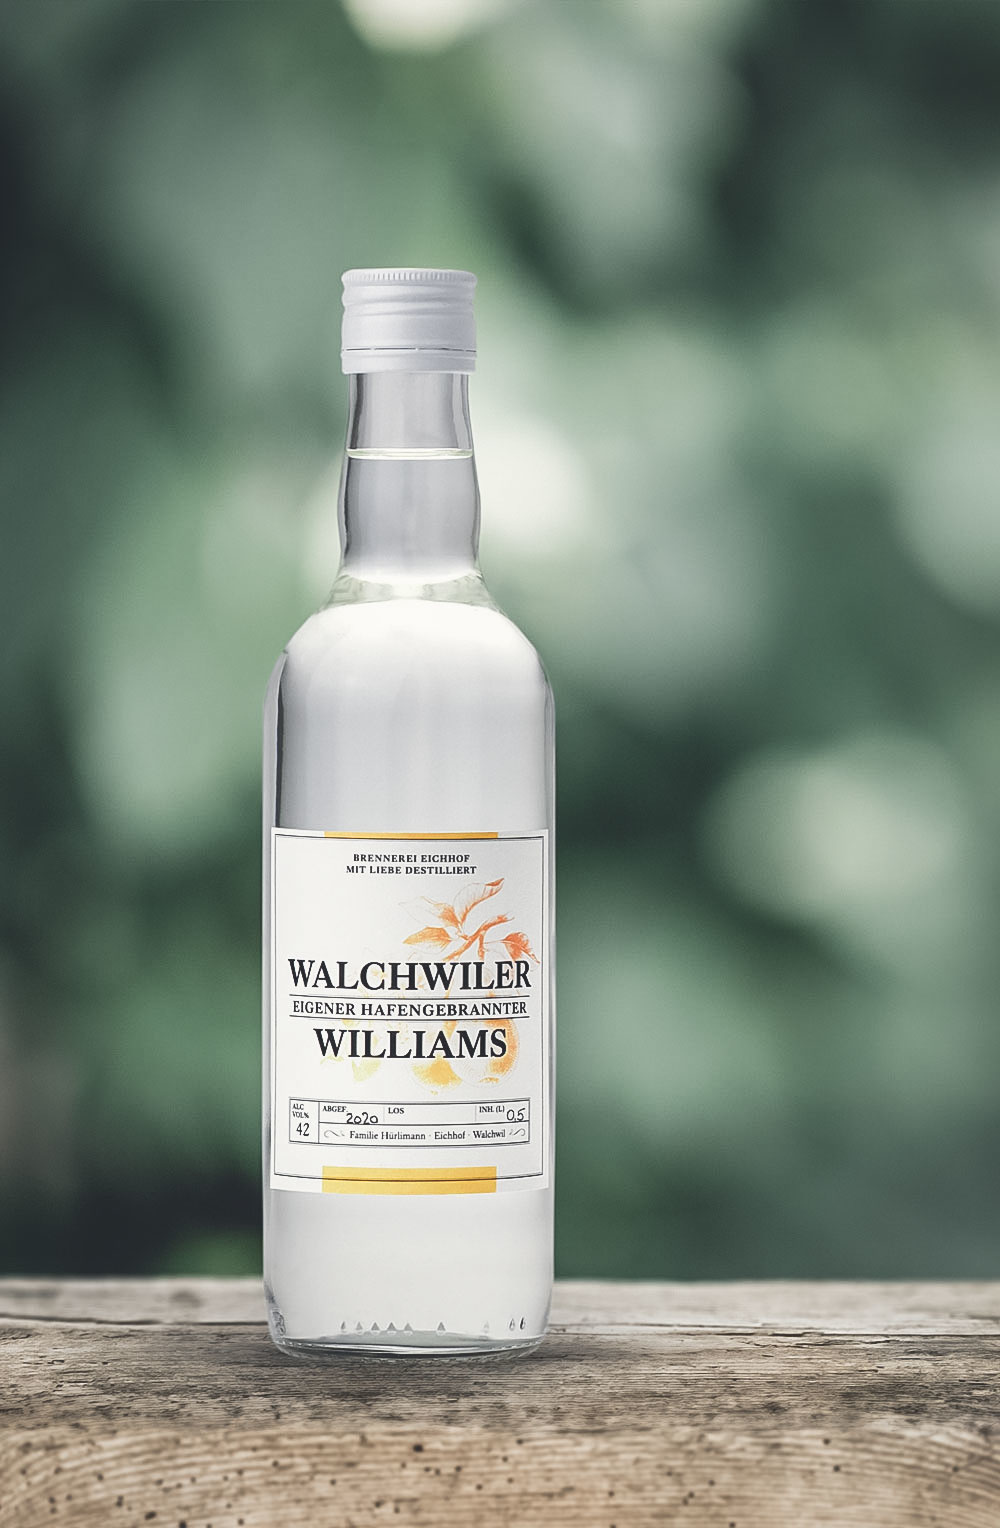 Walchwiler Williams 50cl-1